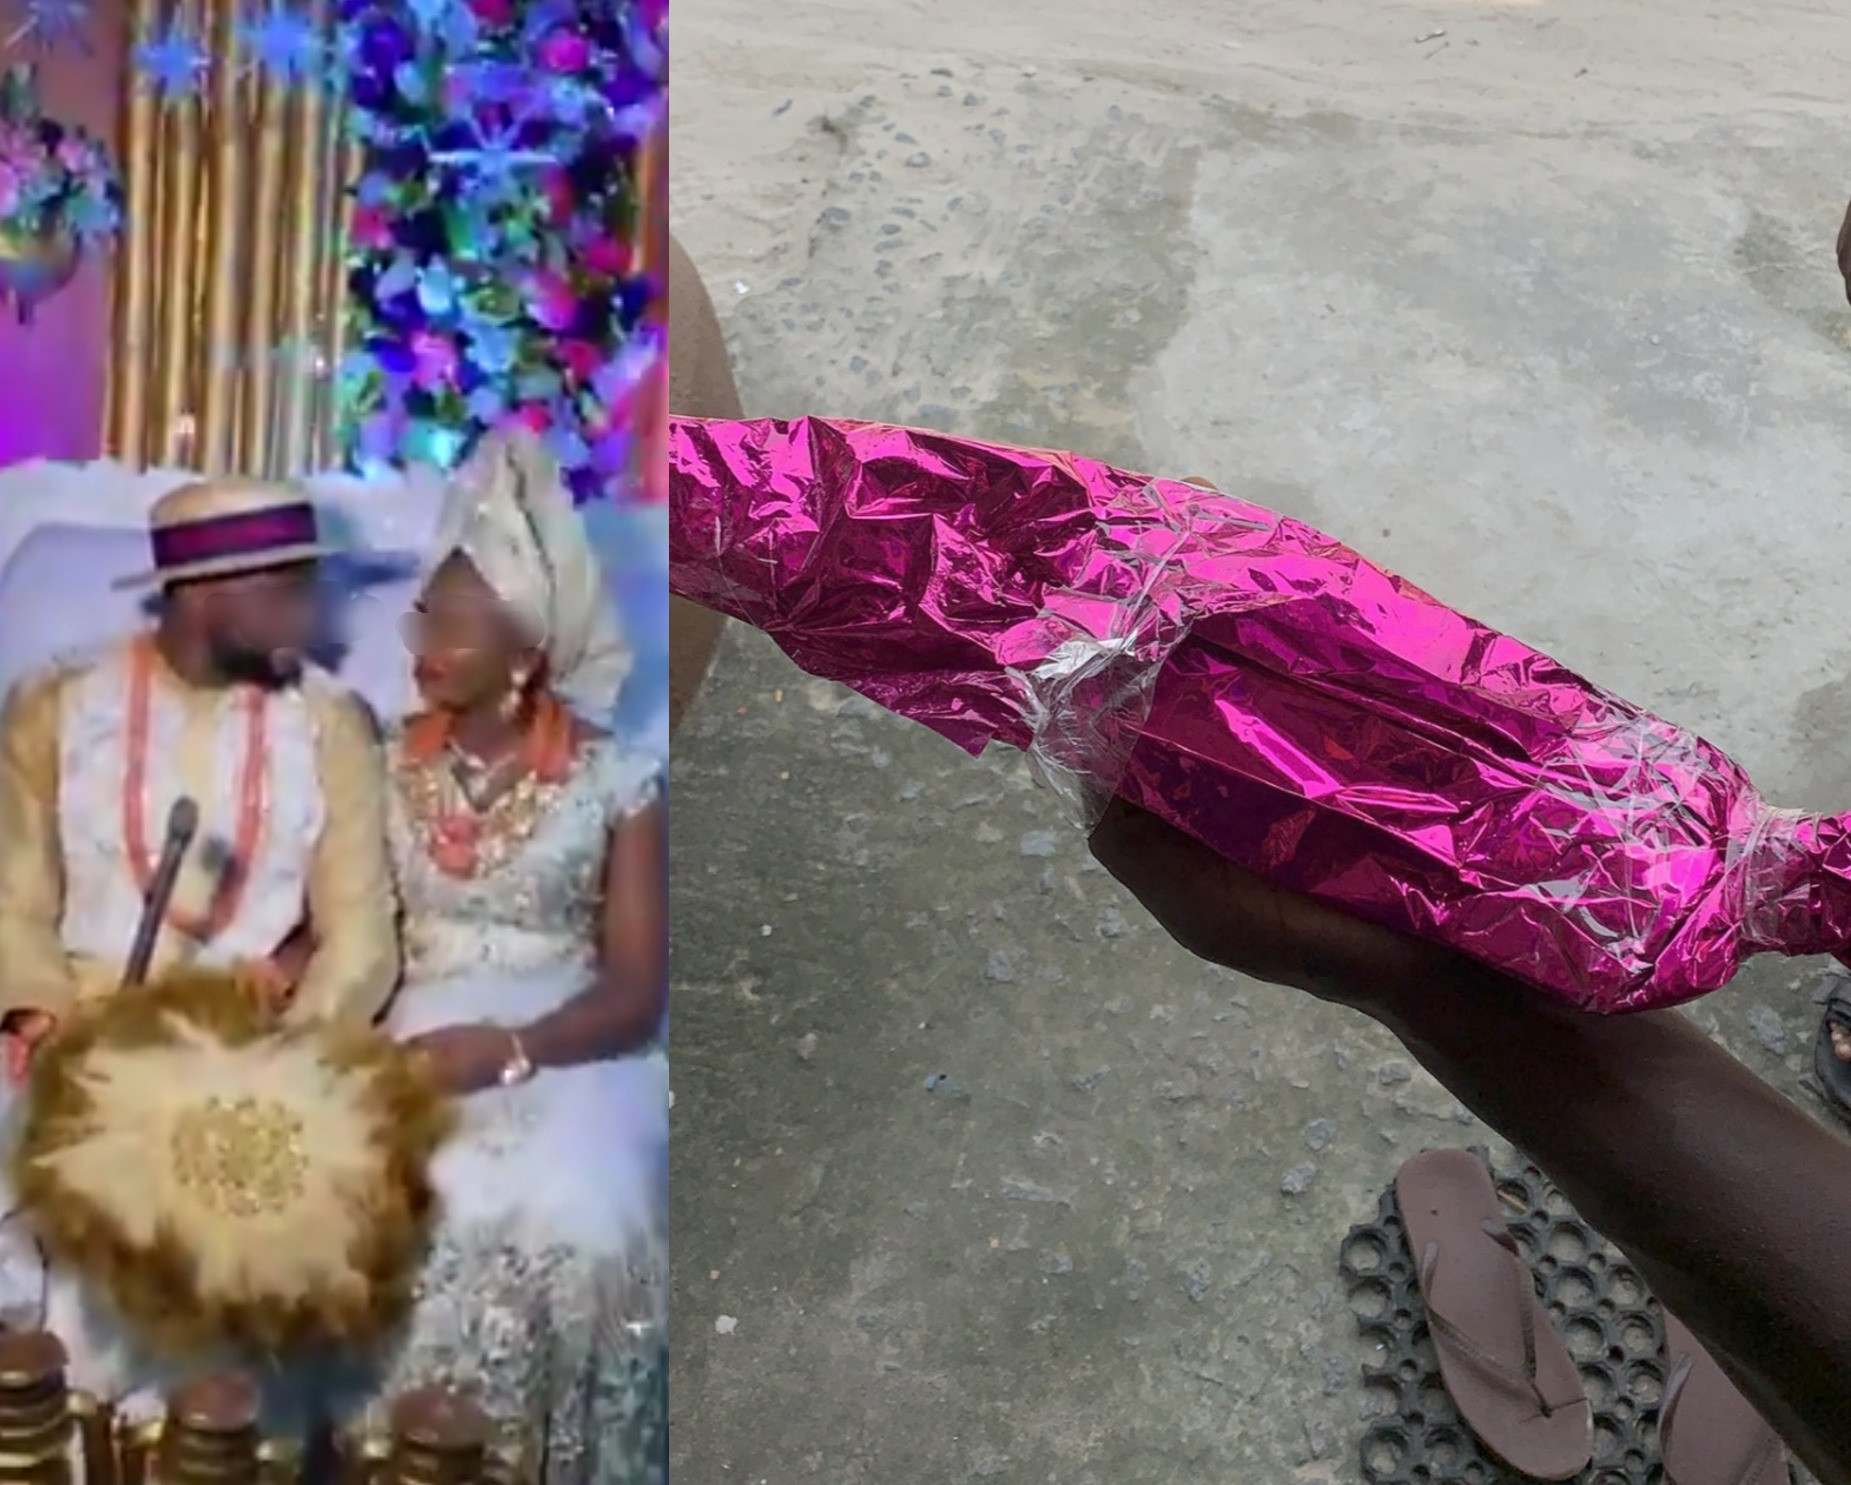 Family expresses worry as bride is given a wrapped cutlass as a wedding gift